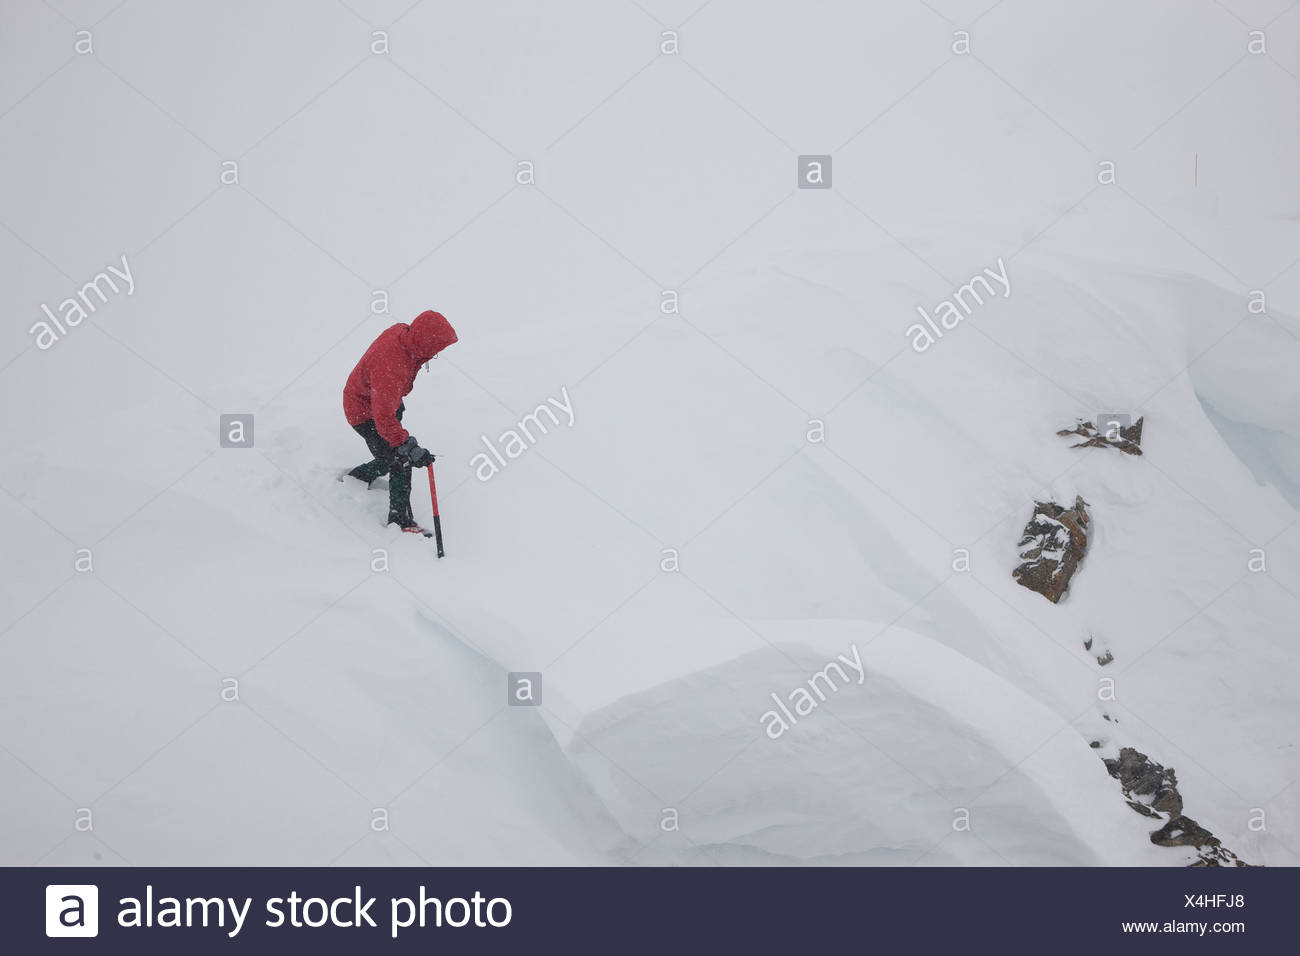 A mountaineer tests a cornice with his ice axe while glacier traveling in a snow storm in the Alaska Range, Denali National Park - Stock Image